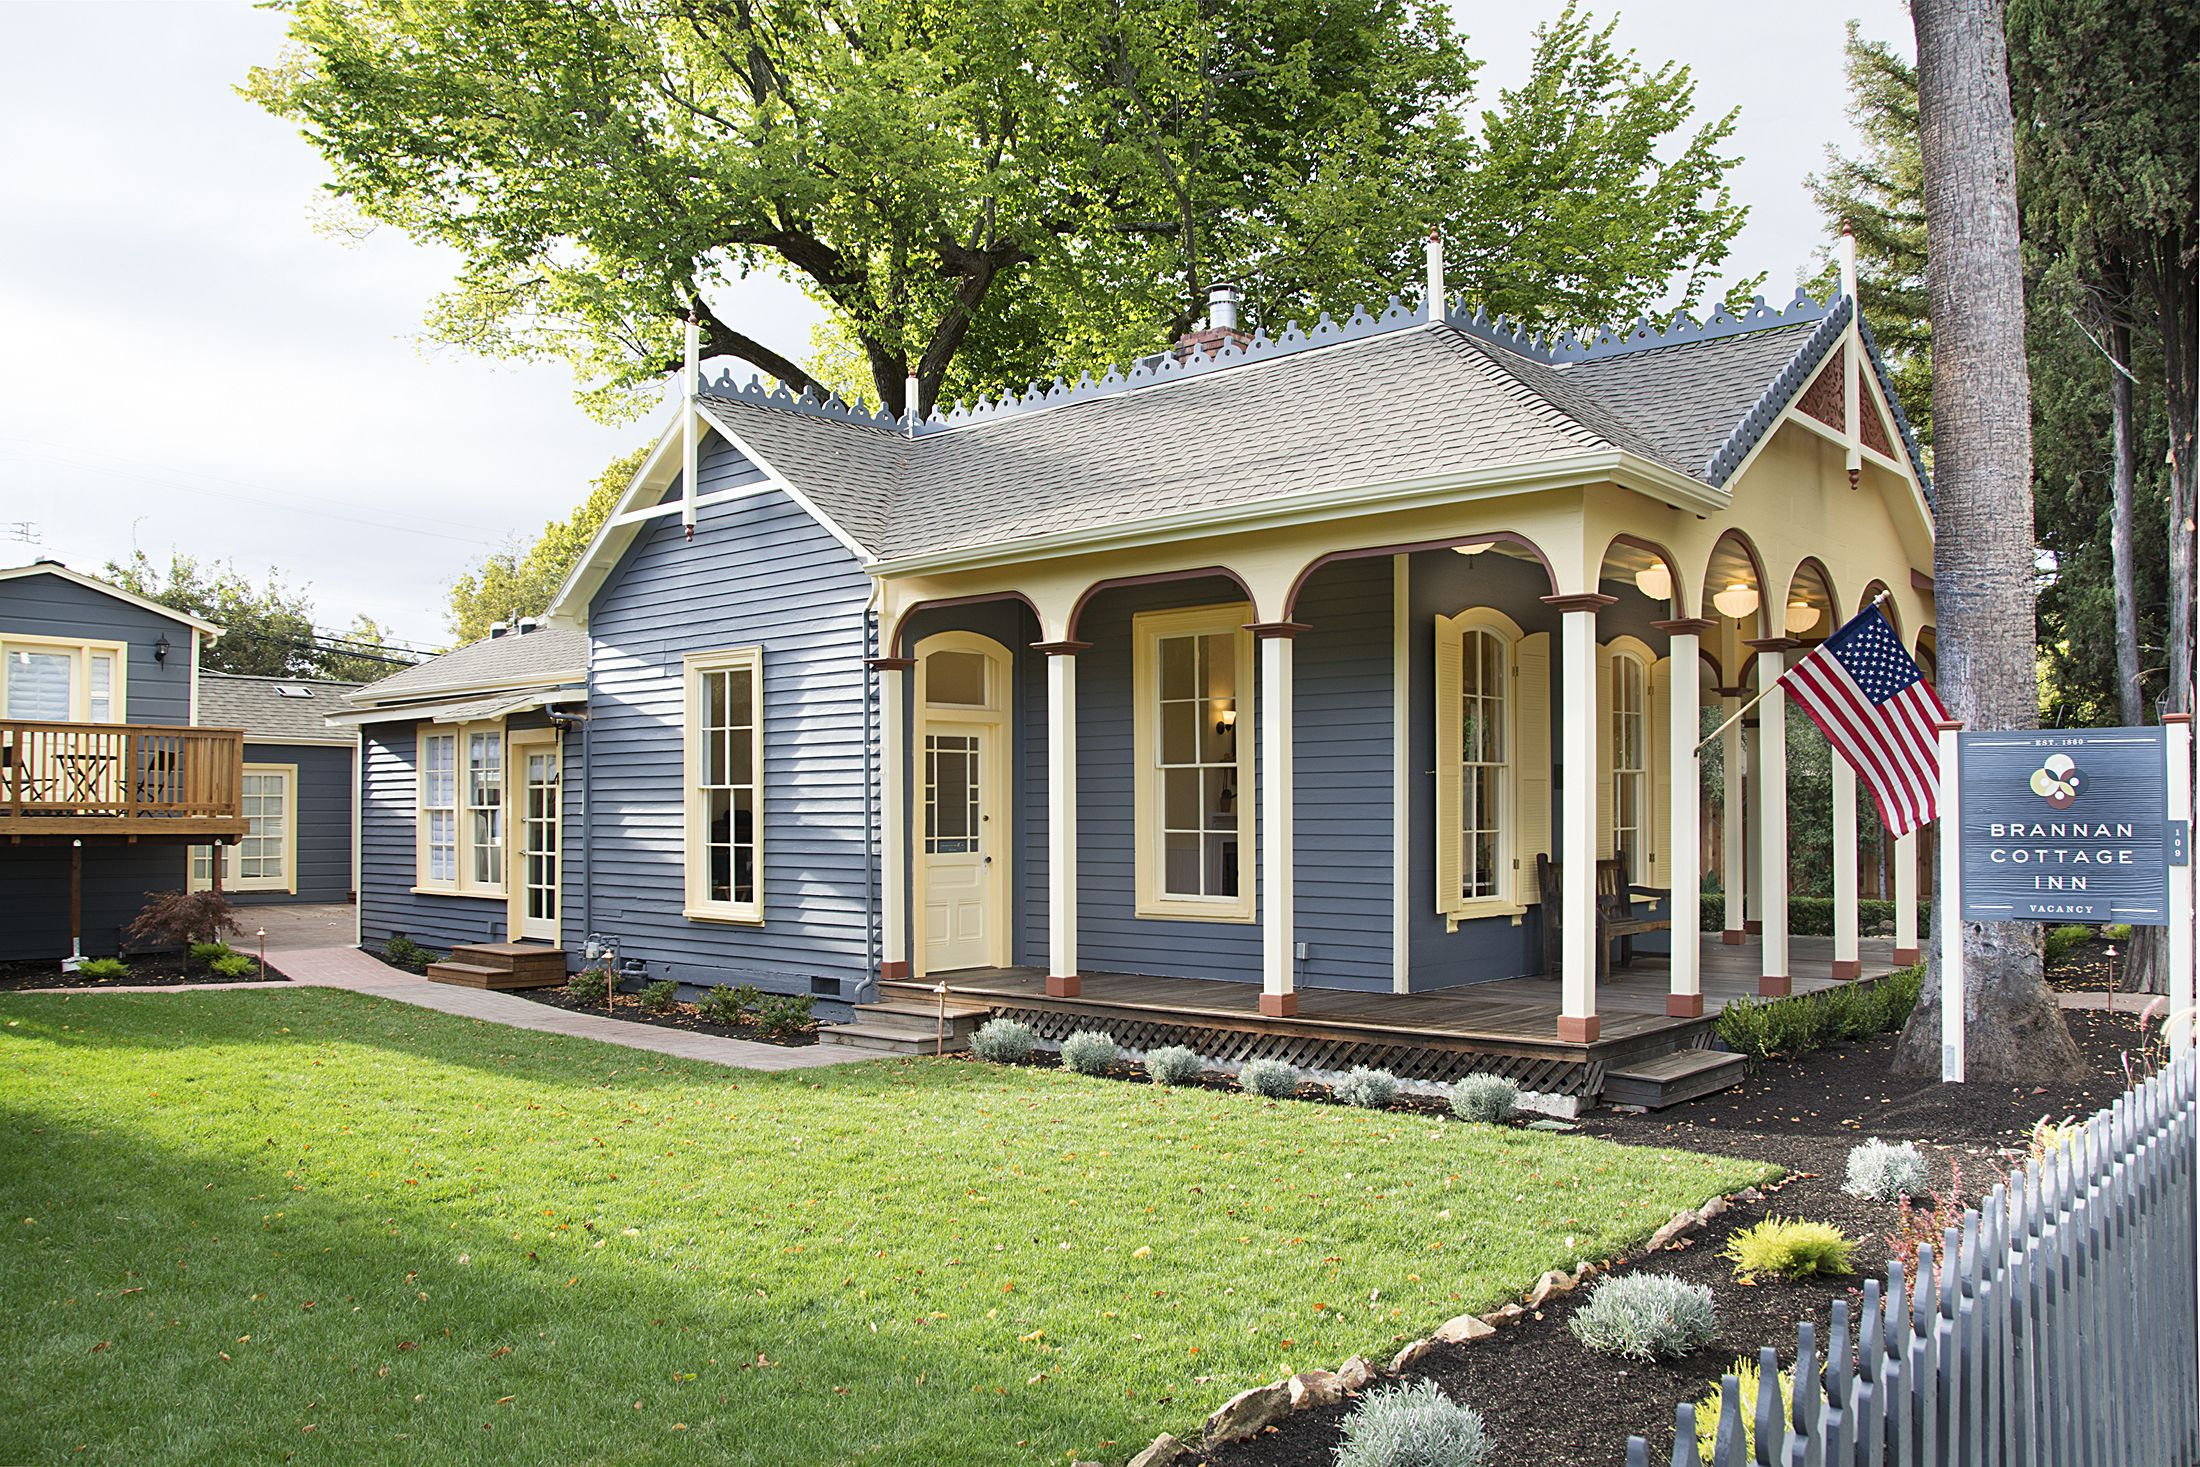 Welcome! Our 1860 Italianate Victorian inn is the last remaining resort cottage from Calistoga's first hot springs resort to remain in its original location. The past retold... the best of the historic and the new. Grand Reopening Special on now. http://brannancottageinn.com/